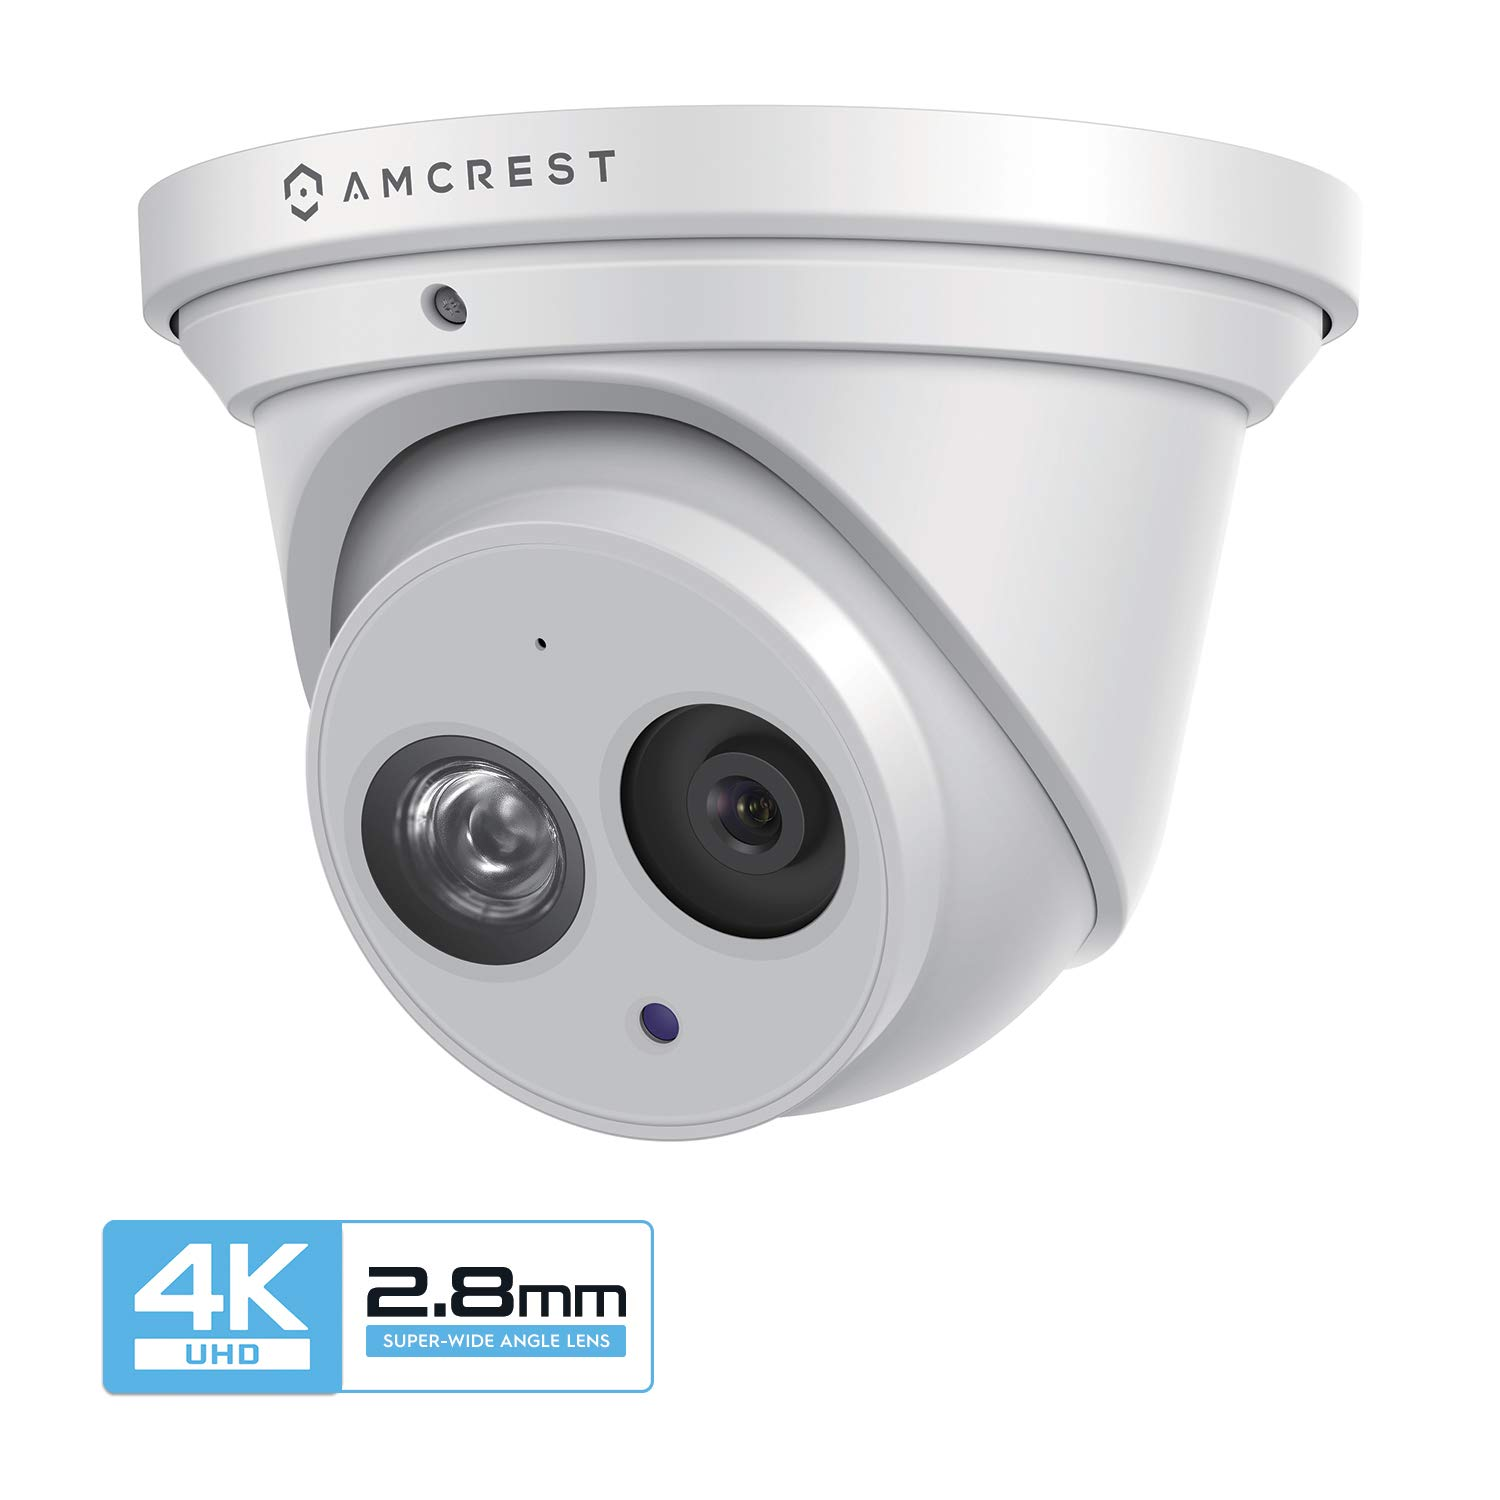 Amcrest UltraHD 4K 8MP Outdoor Security IP Turret PoE Camera, 3840×2160, 164ft NightVision, 2.8mm Lens, IP67 Weatherproof, MicroSD Recording 128GB , White IP8M-T2499EW